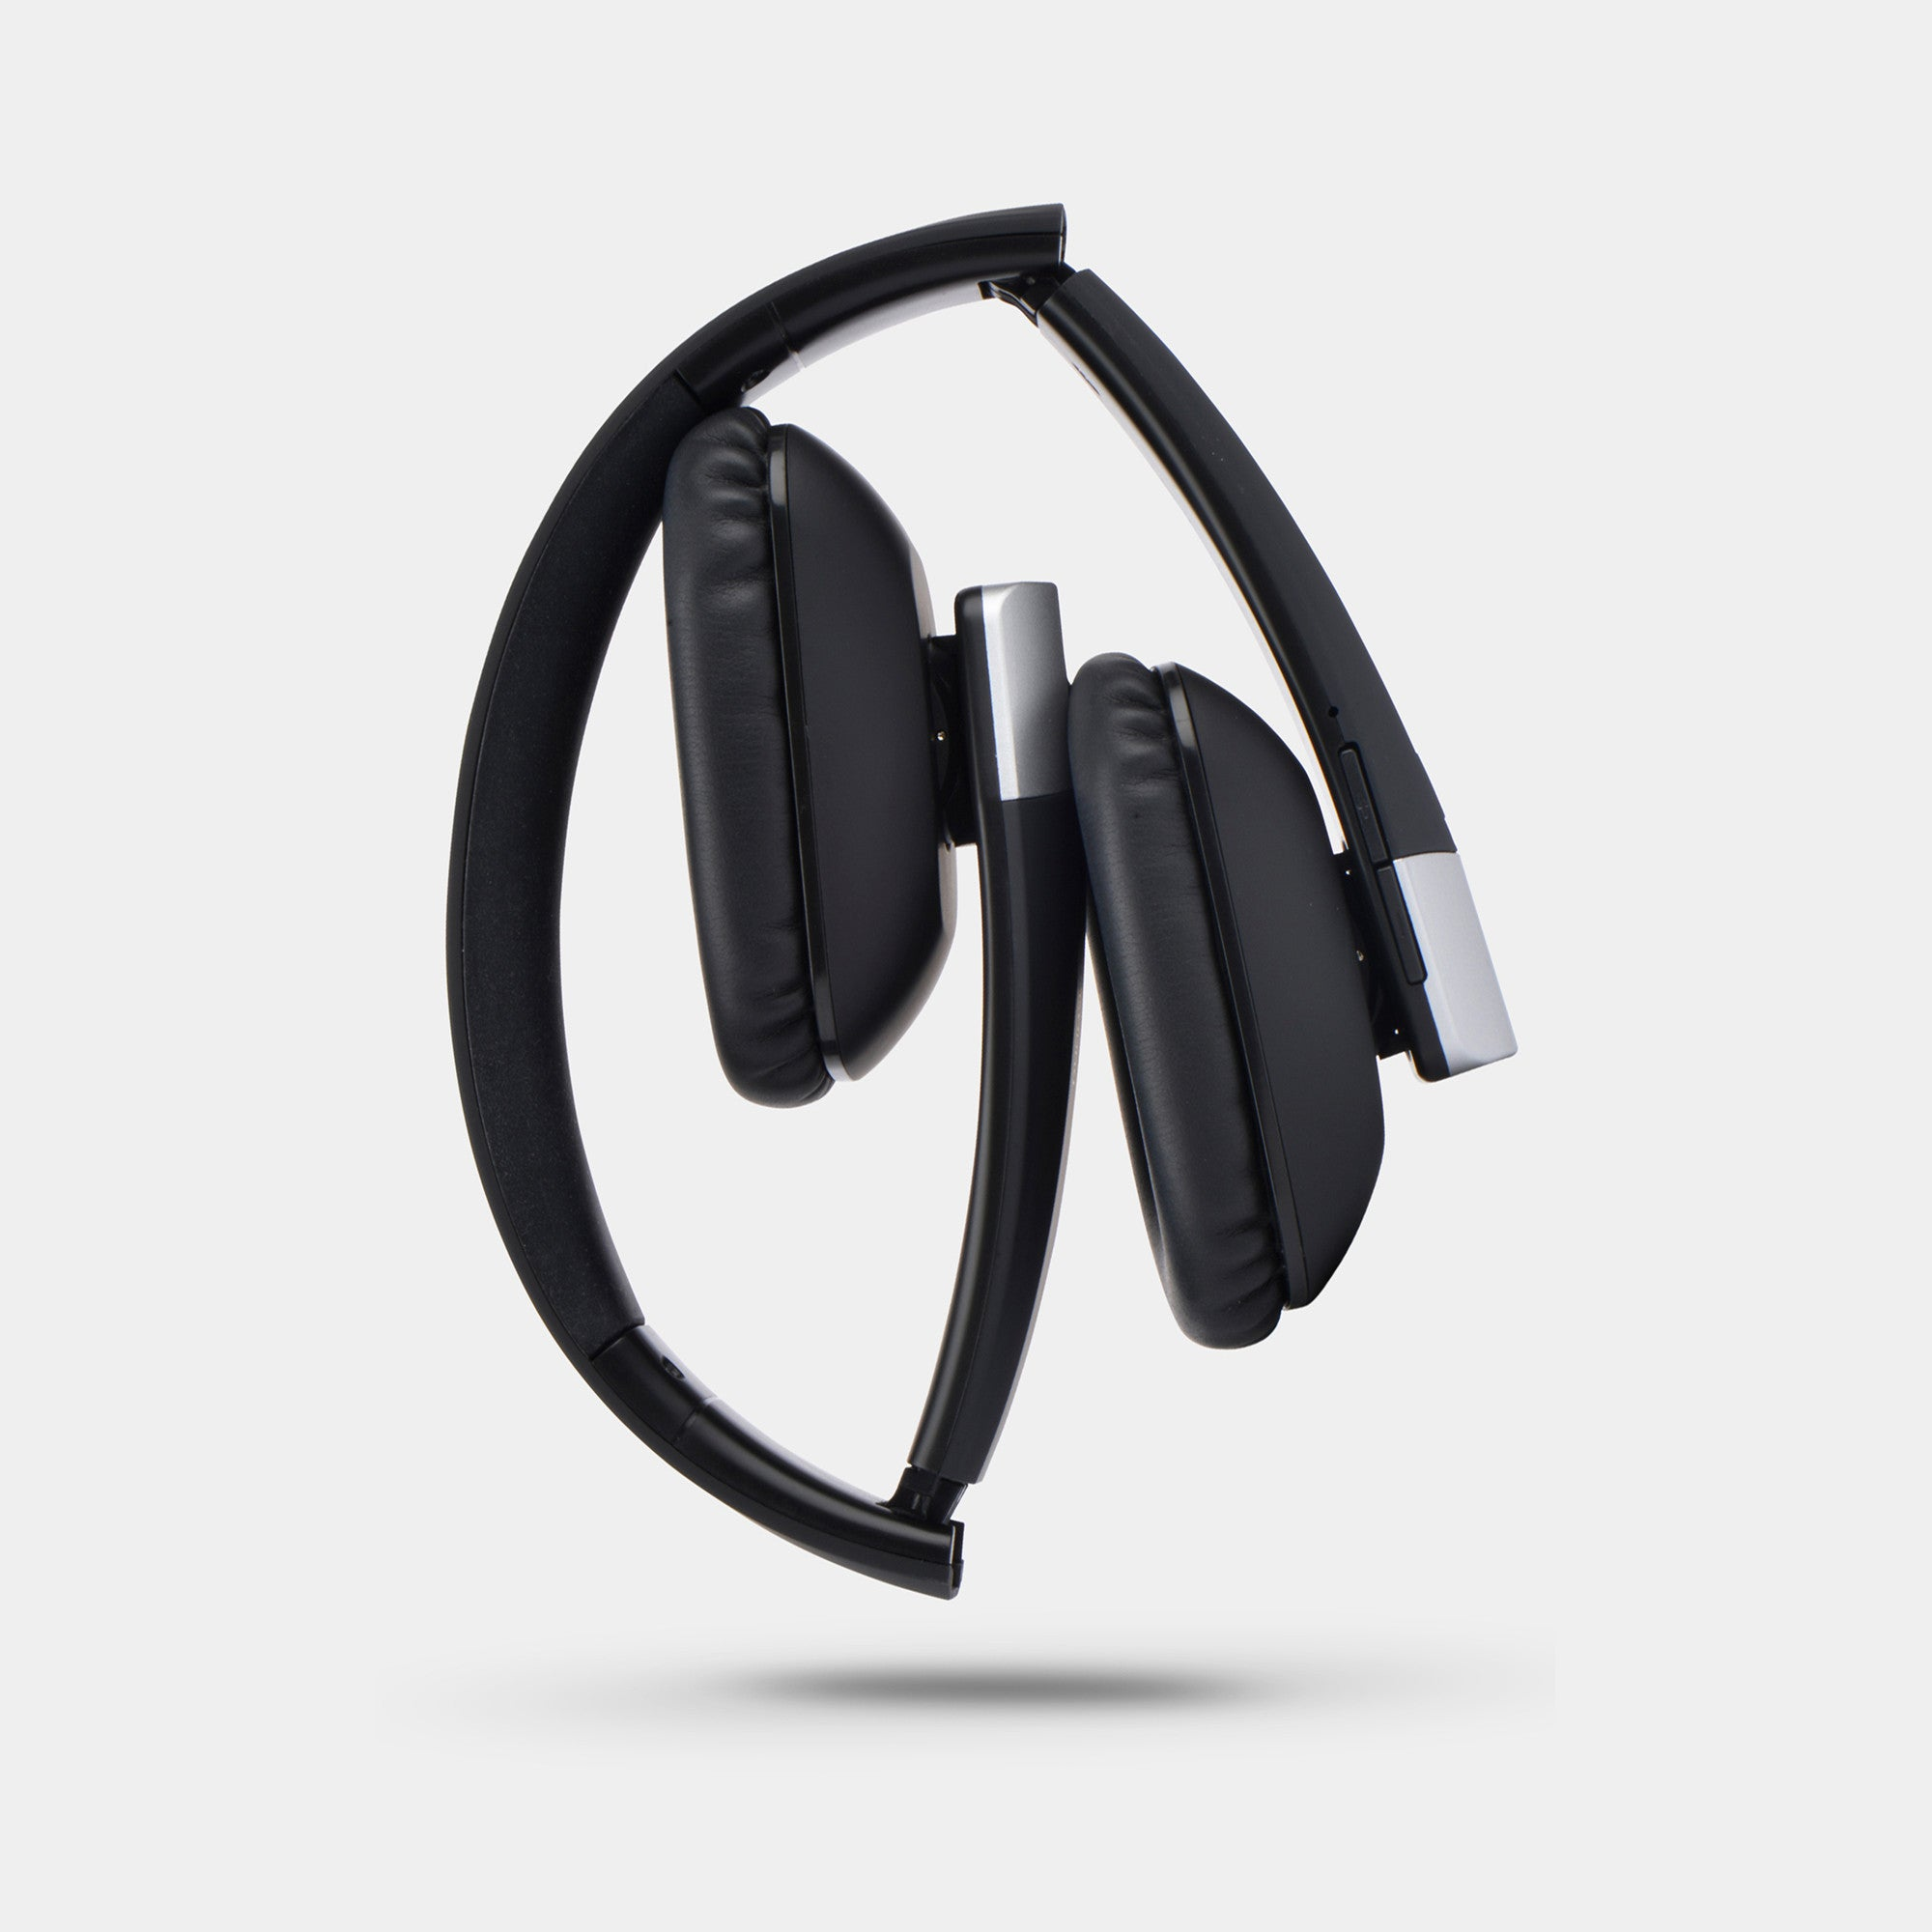 NUSOUND THE TRAVELLER Beatmaster Wireless Foldable Headphone